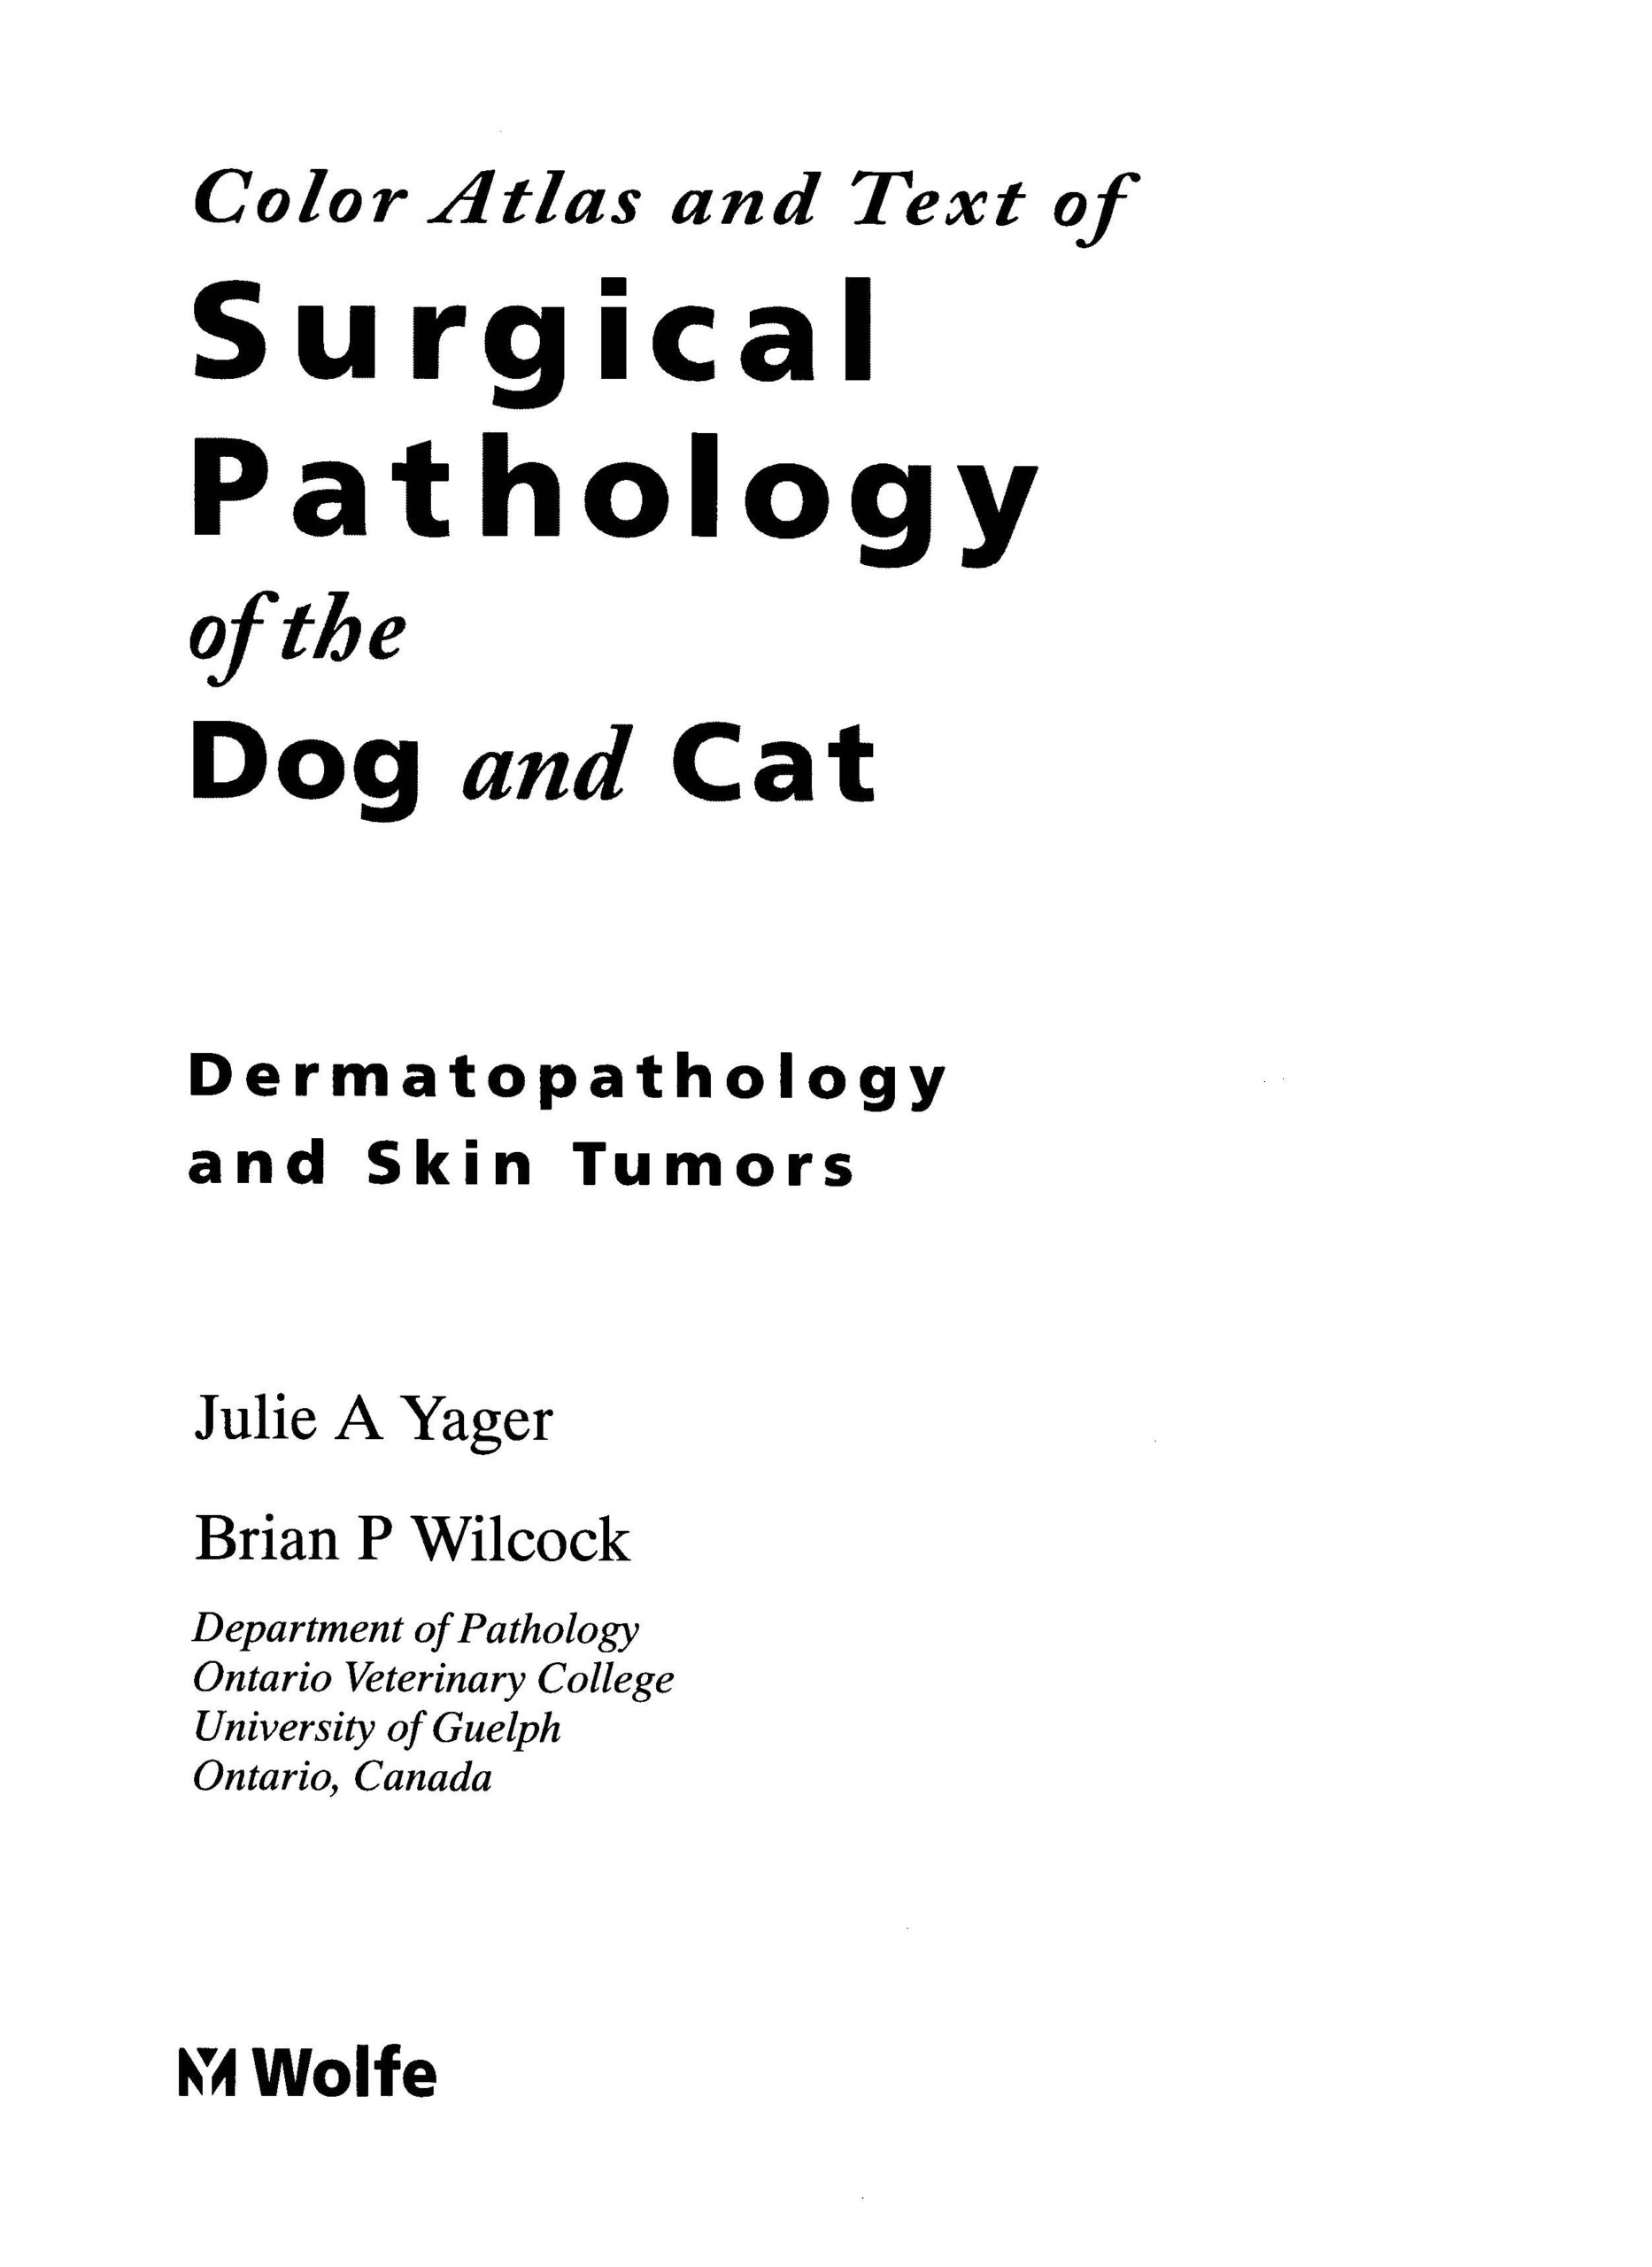 Color Atlas and Text of Surgical Pathology of the Dog and Cat Cover